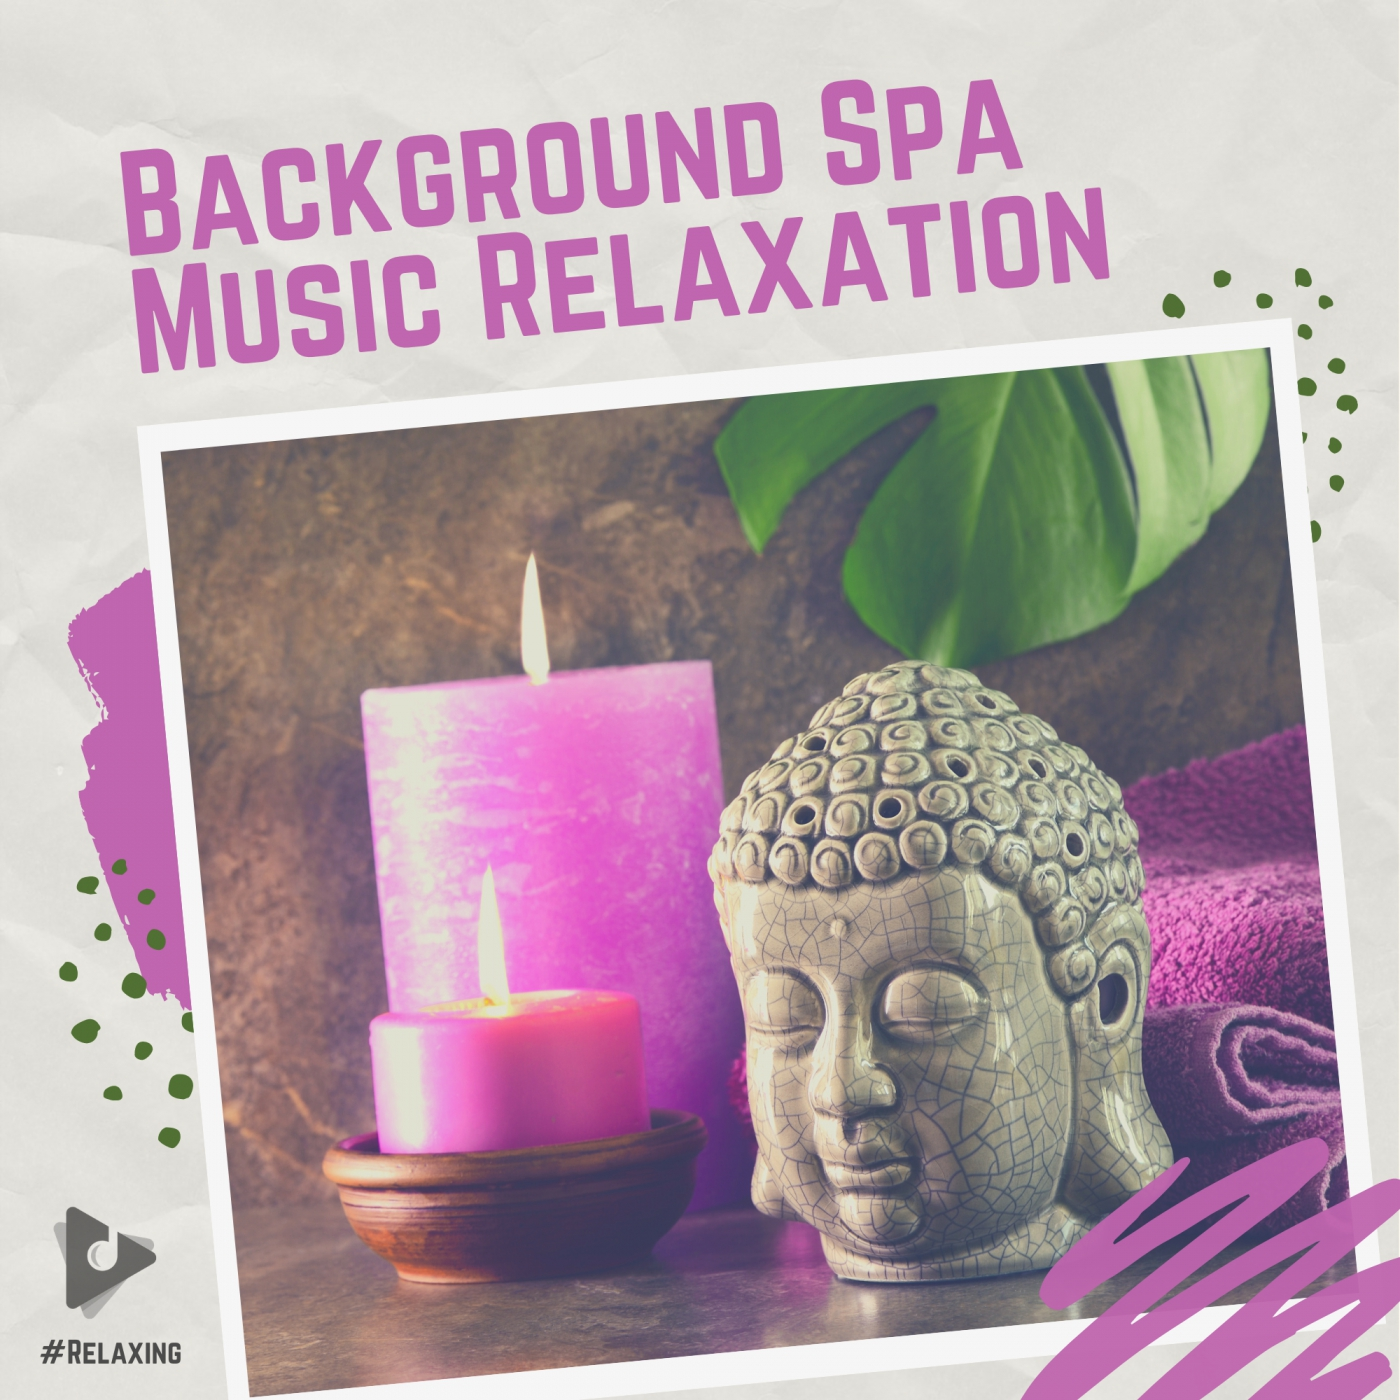 Background Spa Music Relaxation